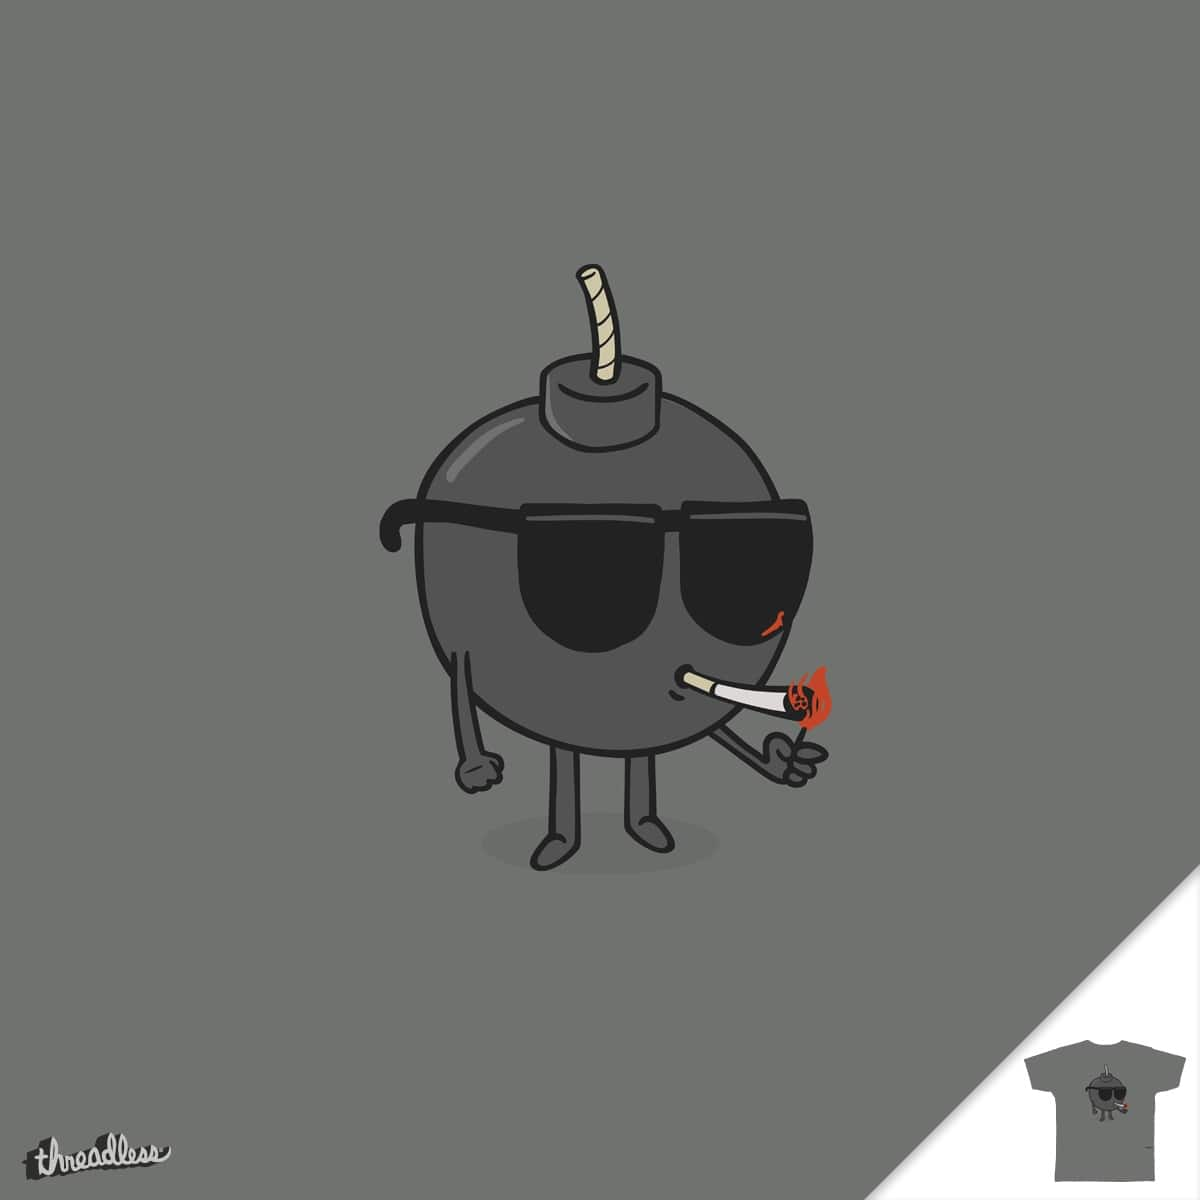 Badass Bomb by murraymullet on Threadless